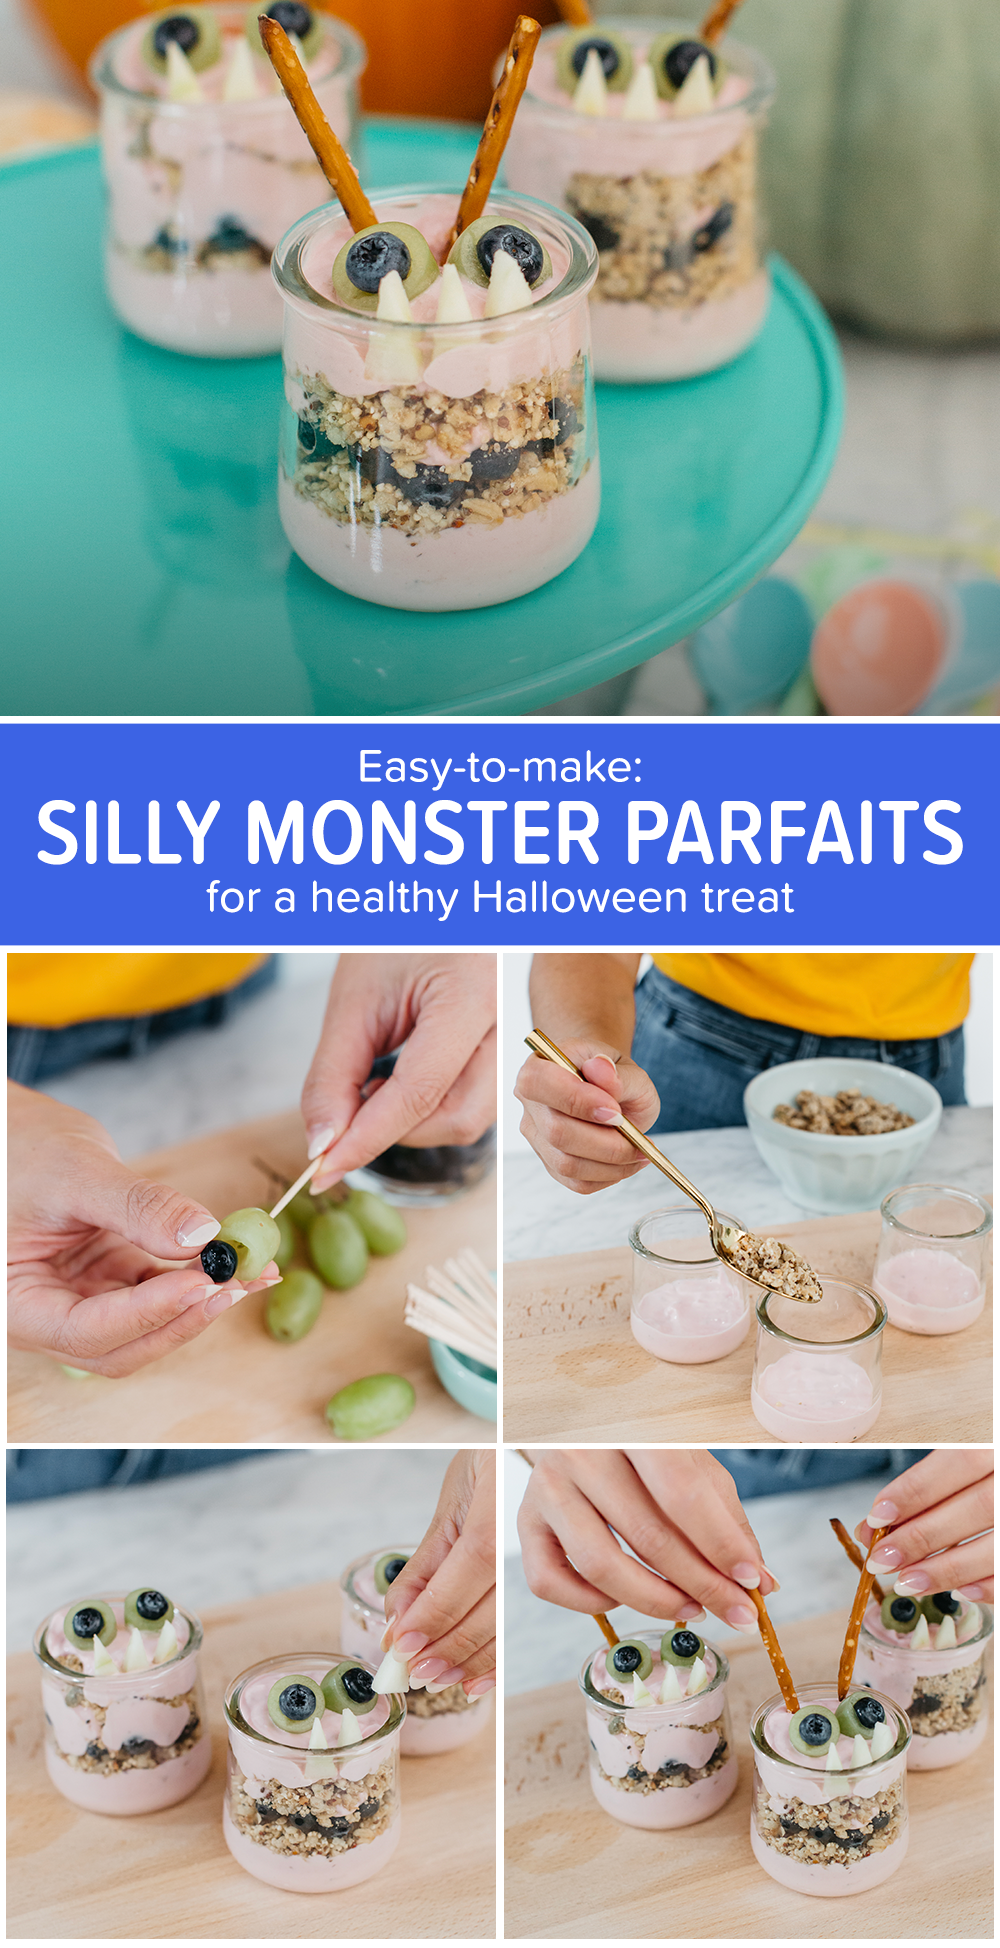 The Best Recipe To Turn Halloween Fright Into Fun Healthy Halloween Treats Food Healthy Halloween